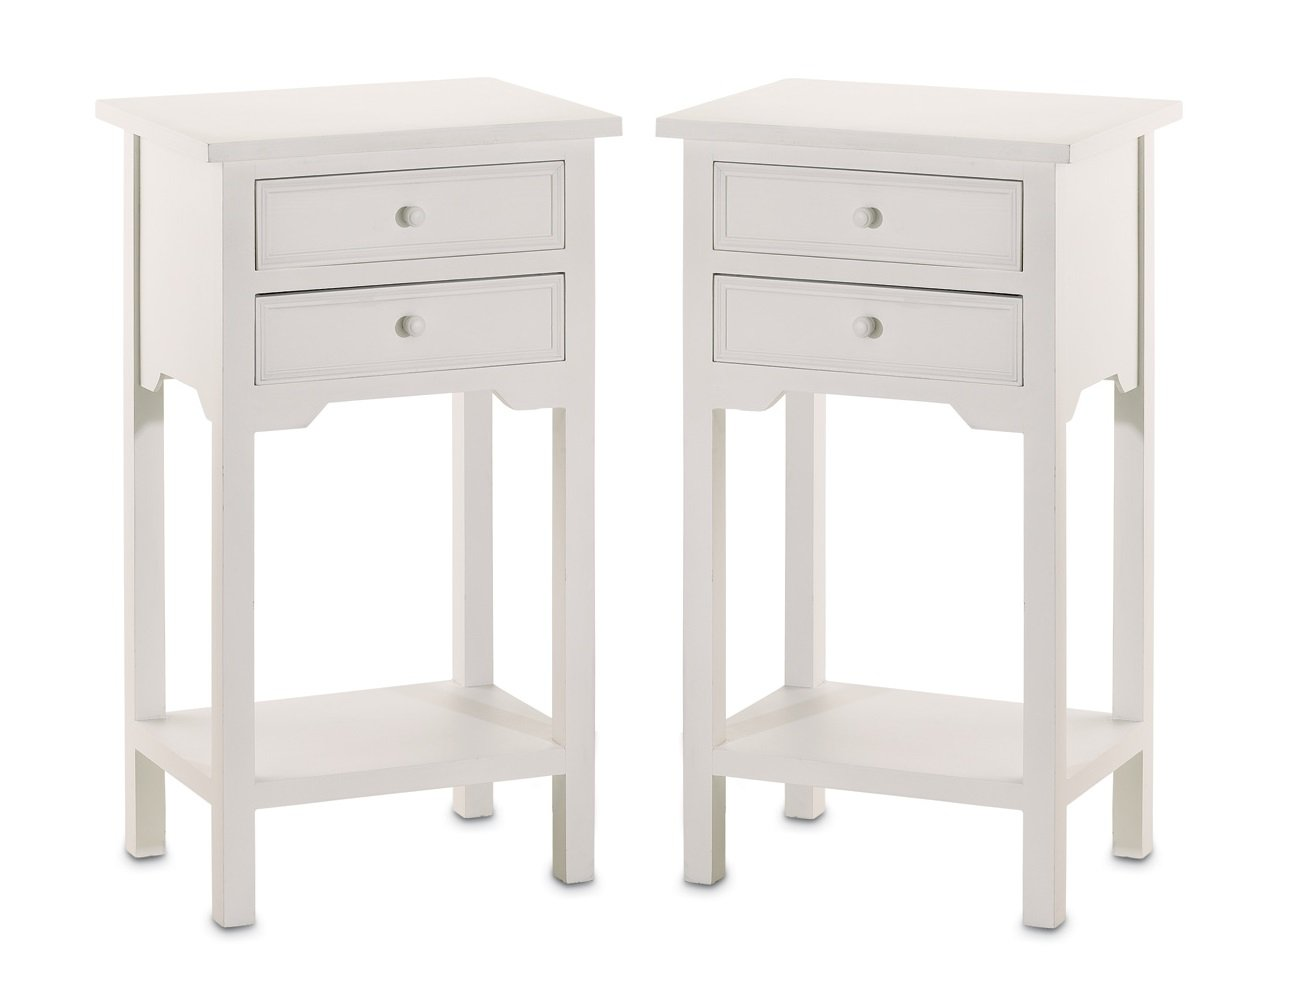 Amazon com set of 2 wood white end tables nightstands with two drawers kitchen dining